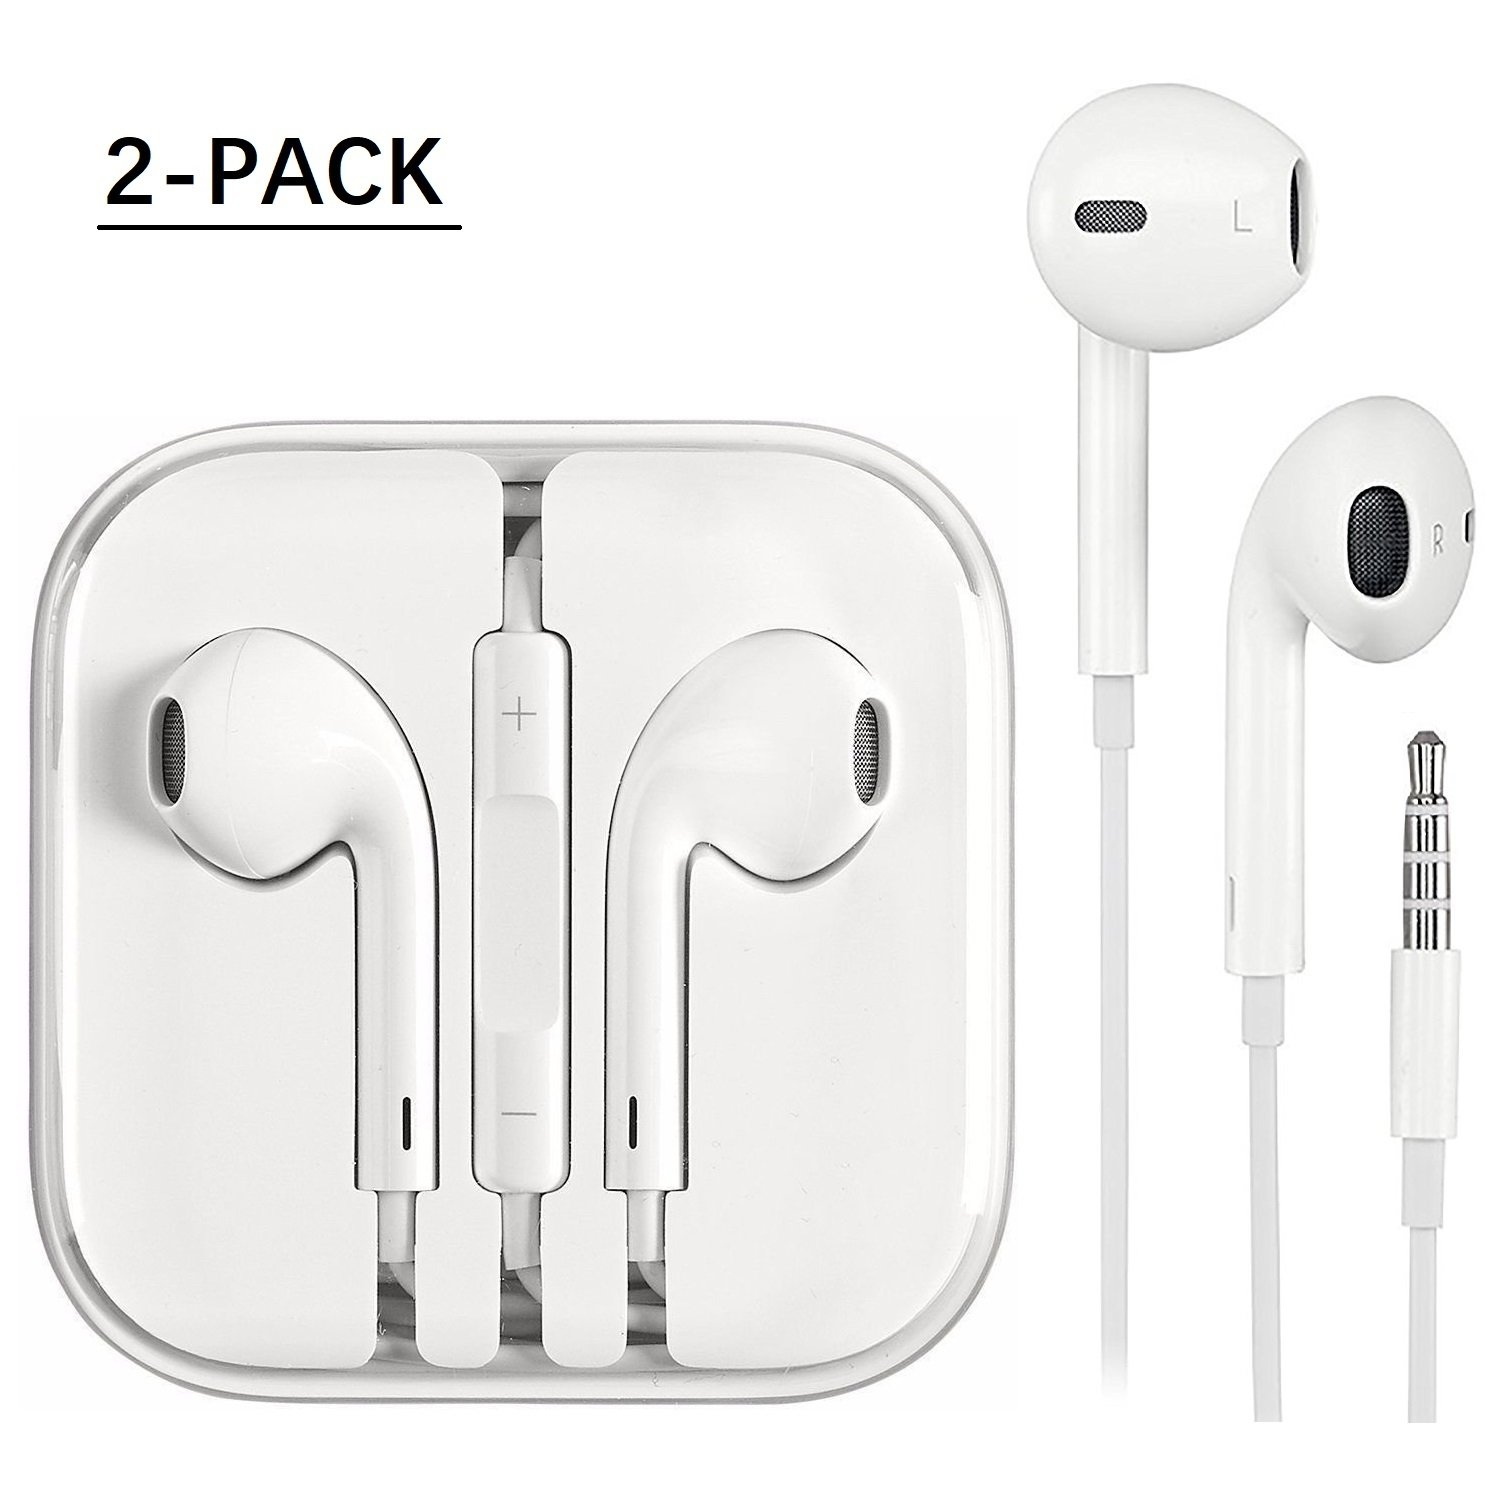 Maongo Earphones 2 Pack,Earbuds, Stereo Headphones With Mic and Remote Control for apple iPhone 6s 6 Plus 5s 5 SE 5c iPod iPad (white) by Maongo